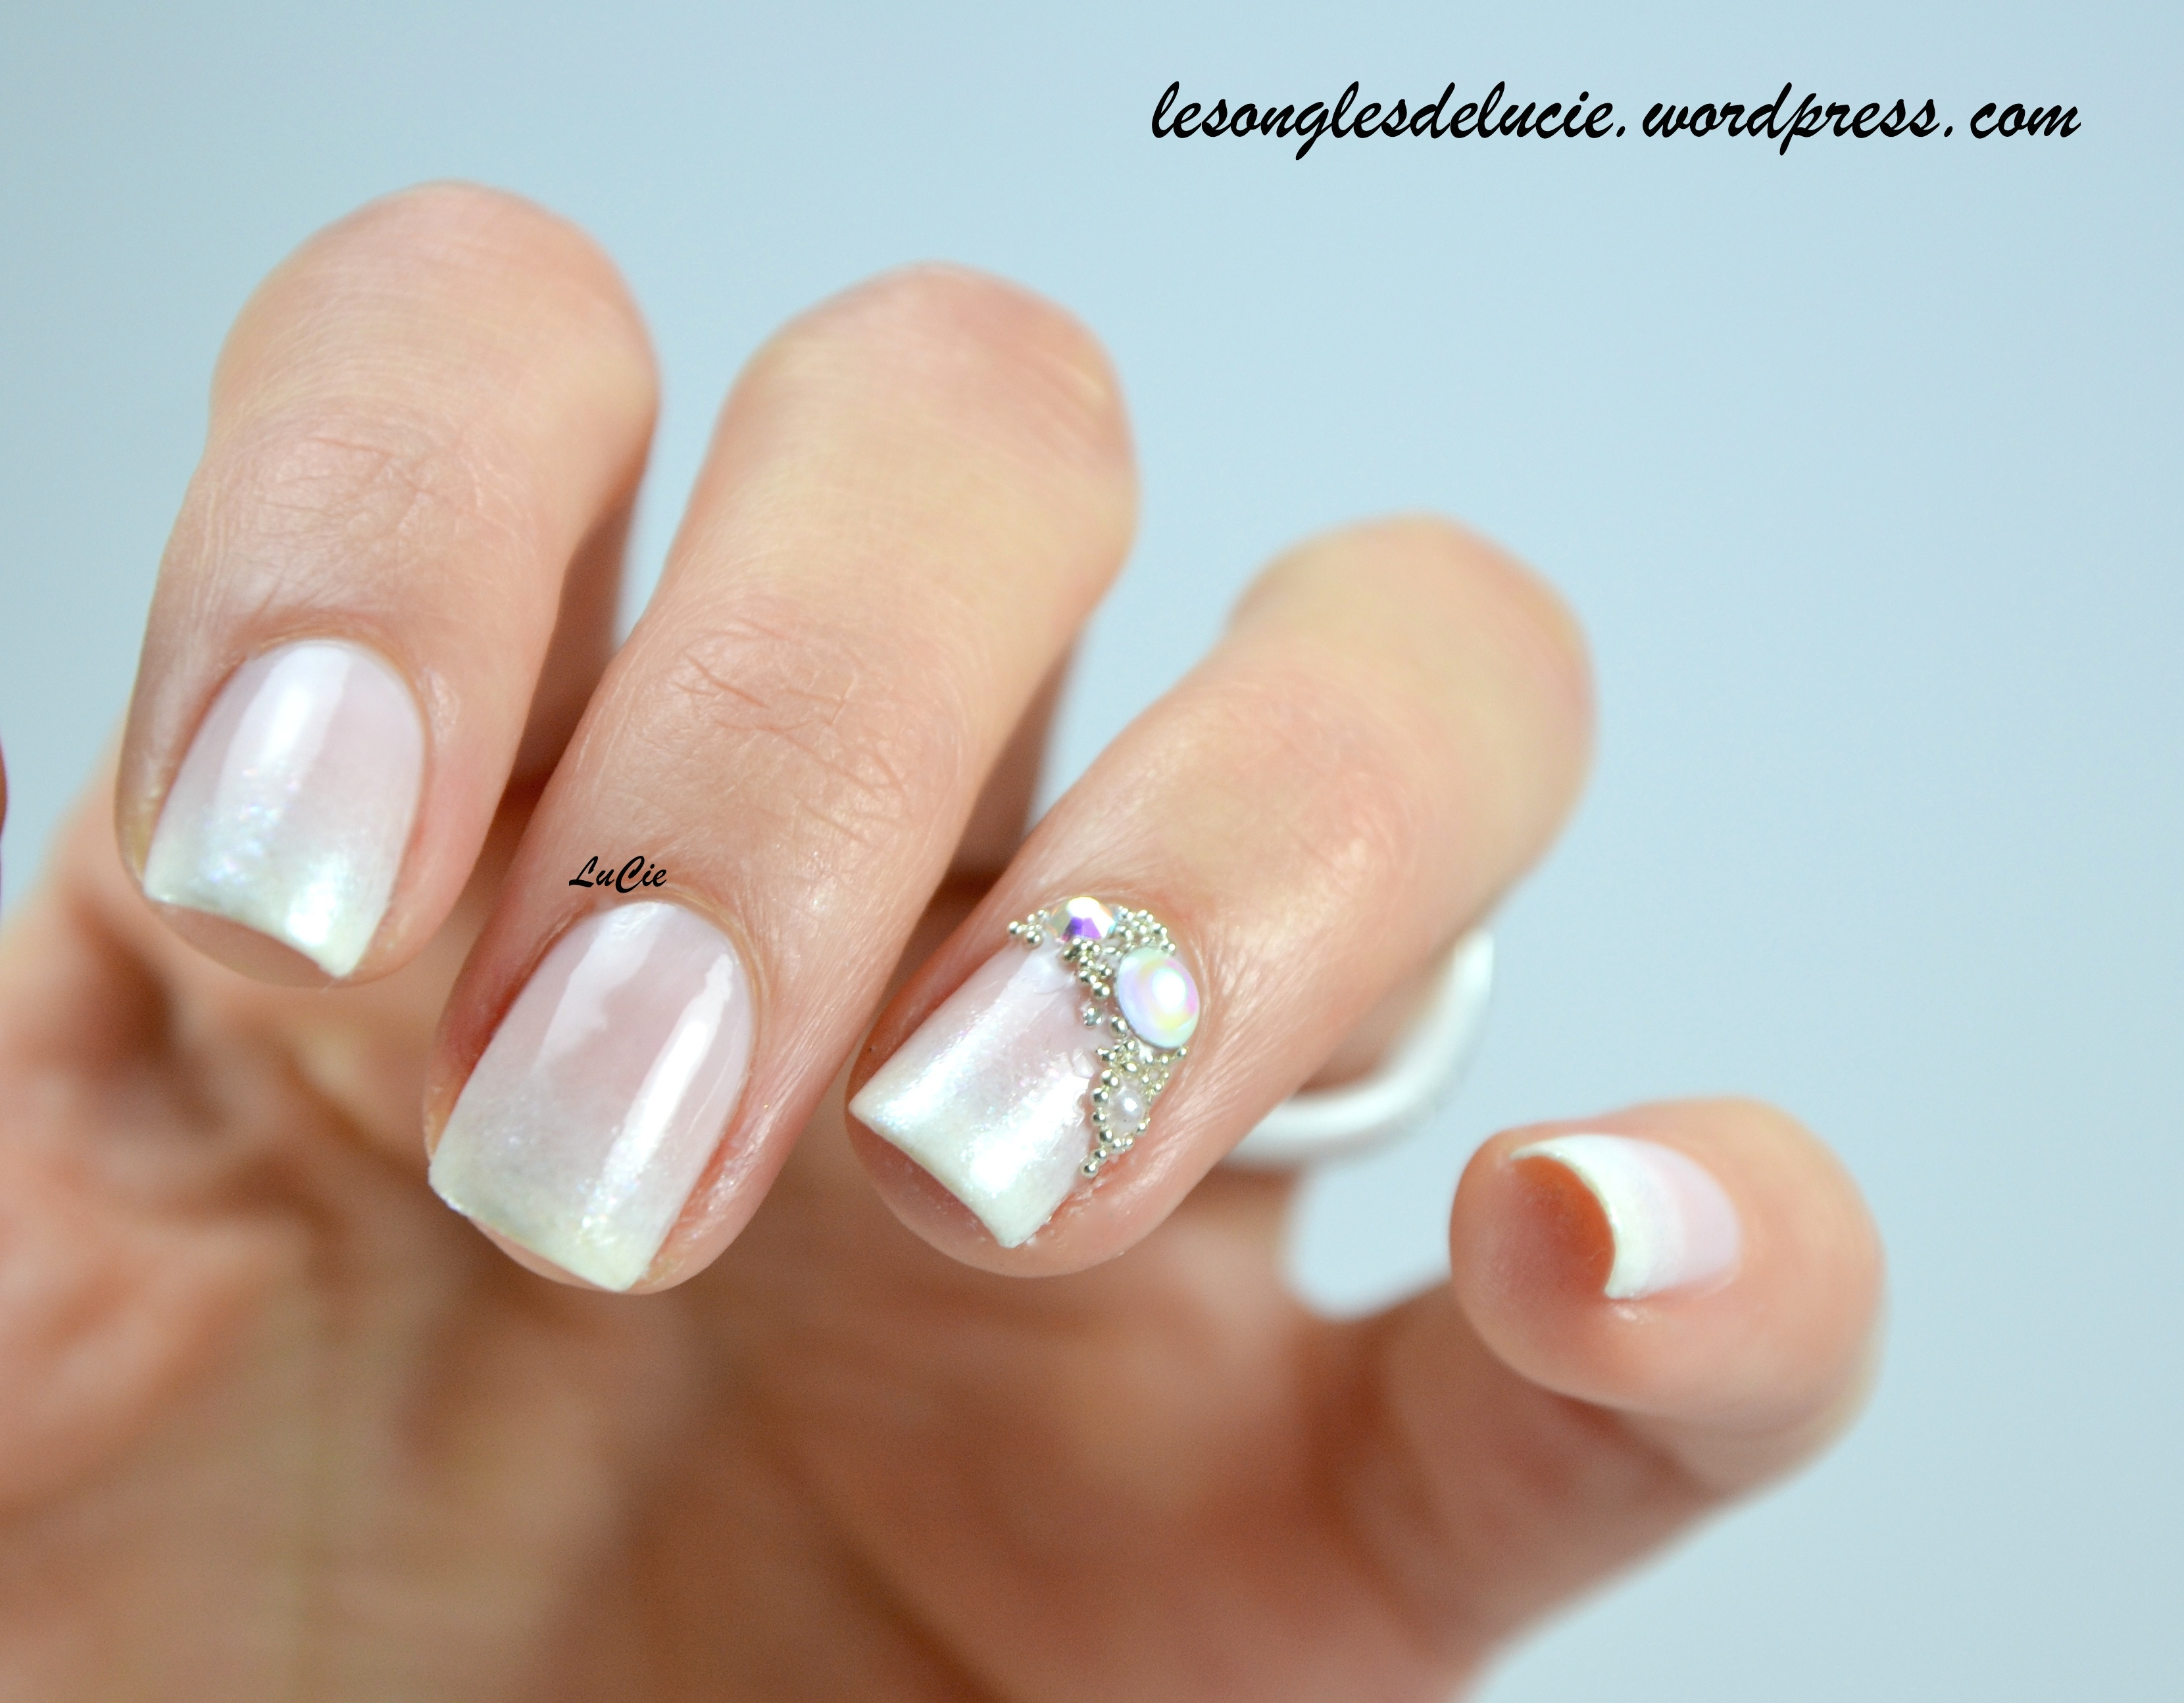 Nail art french baby boomer et accent nail bijoux les ongles de lucie - Nail art discret ...